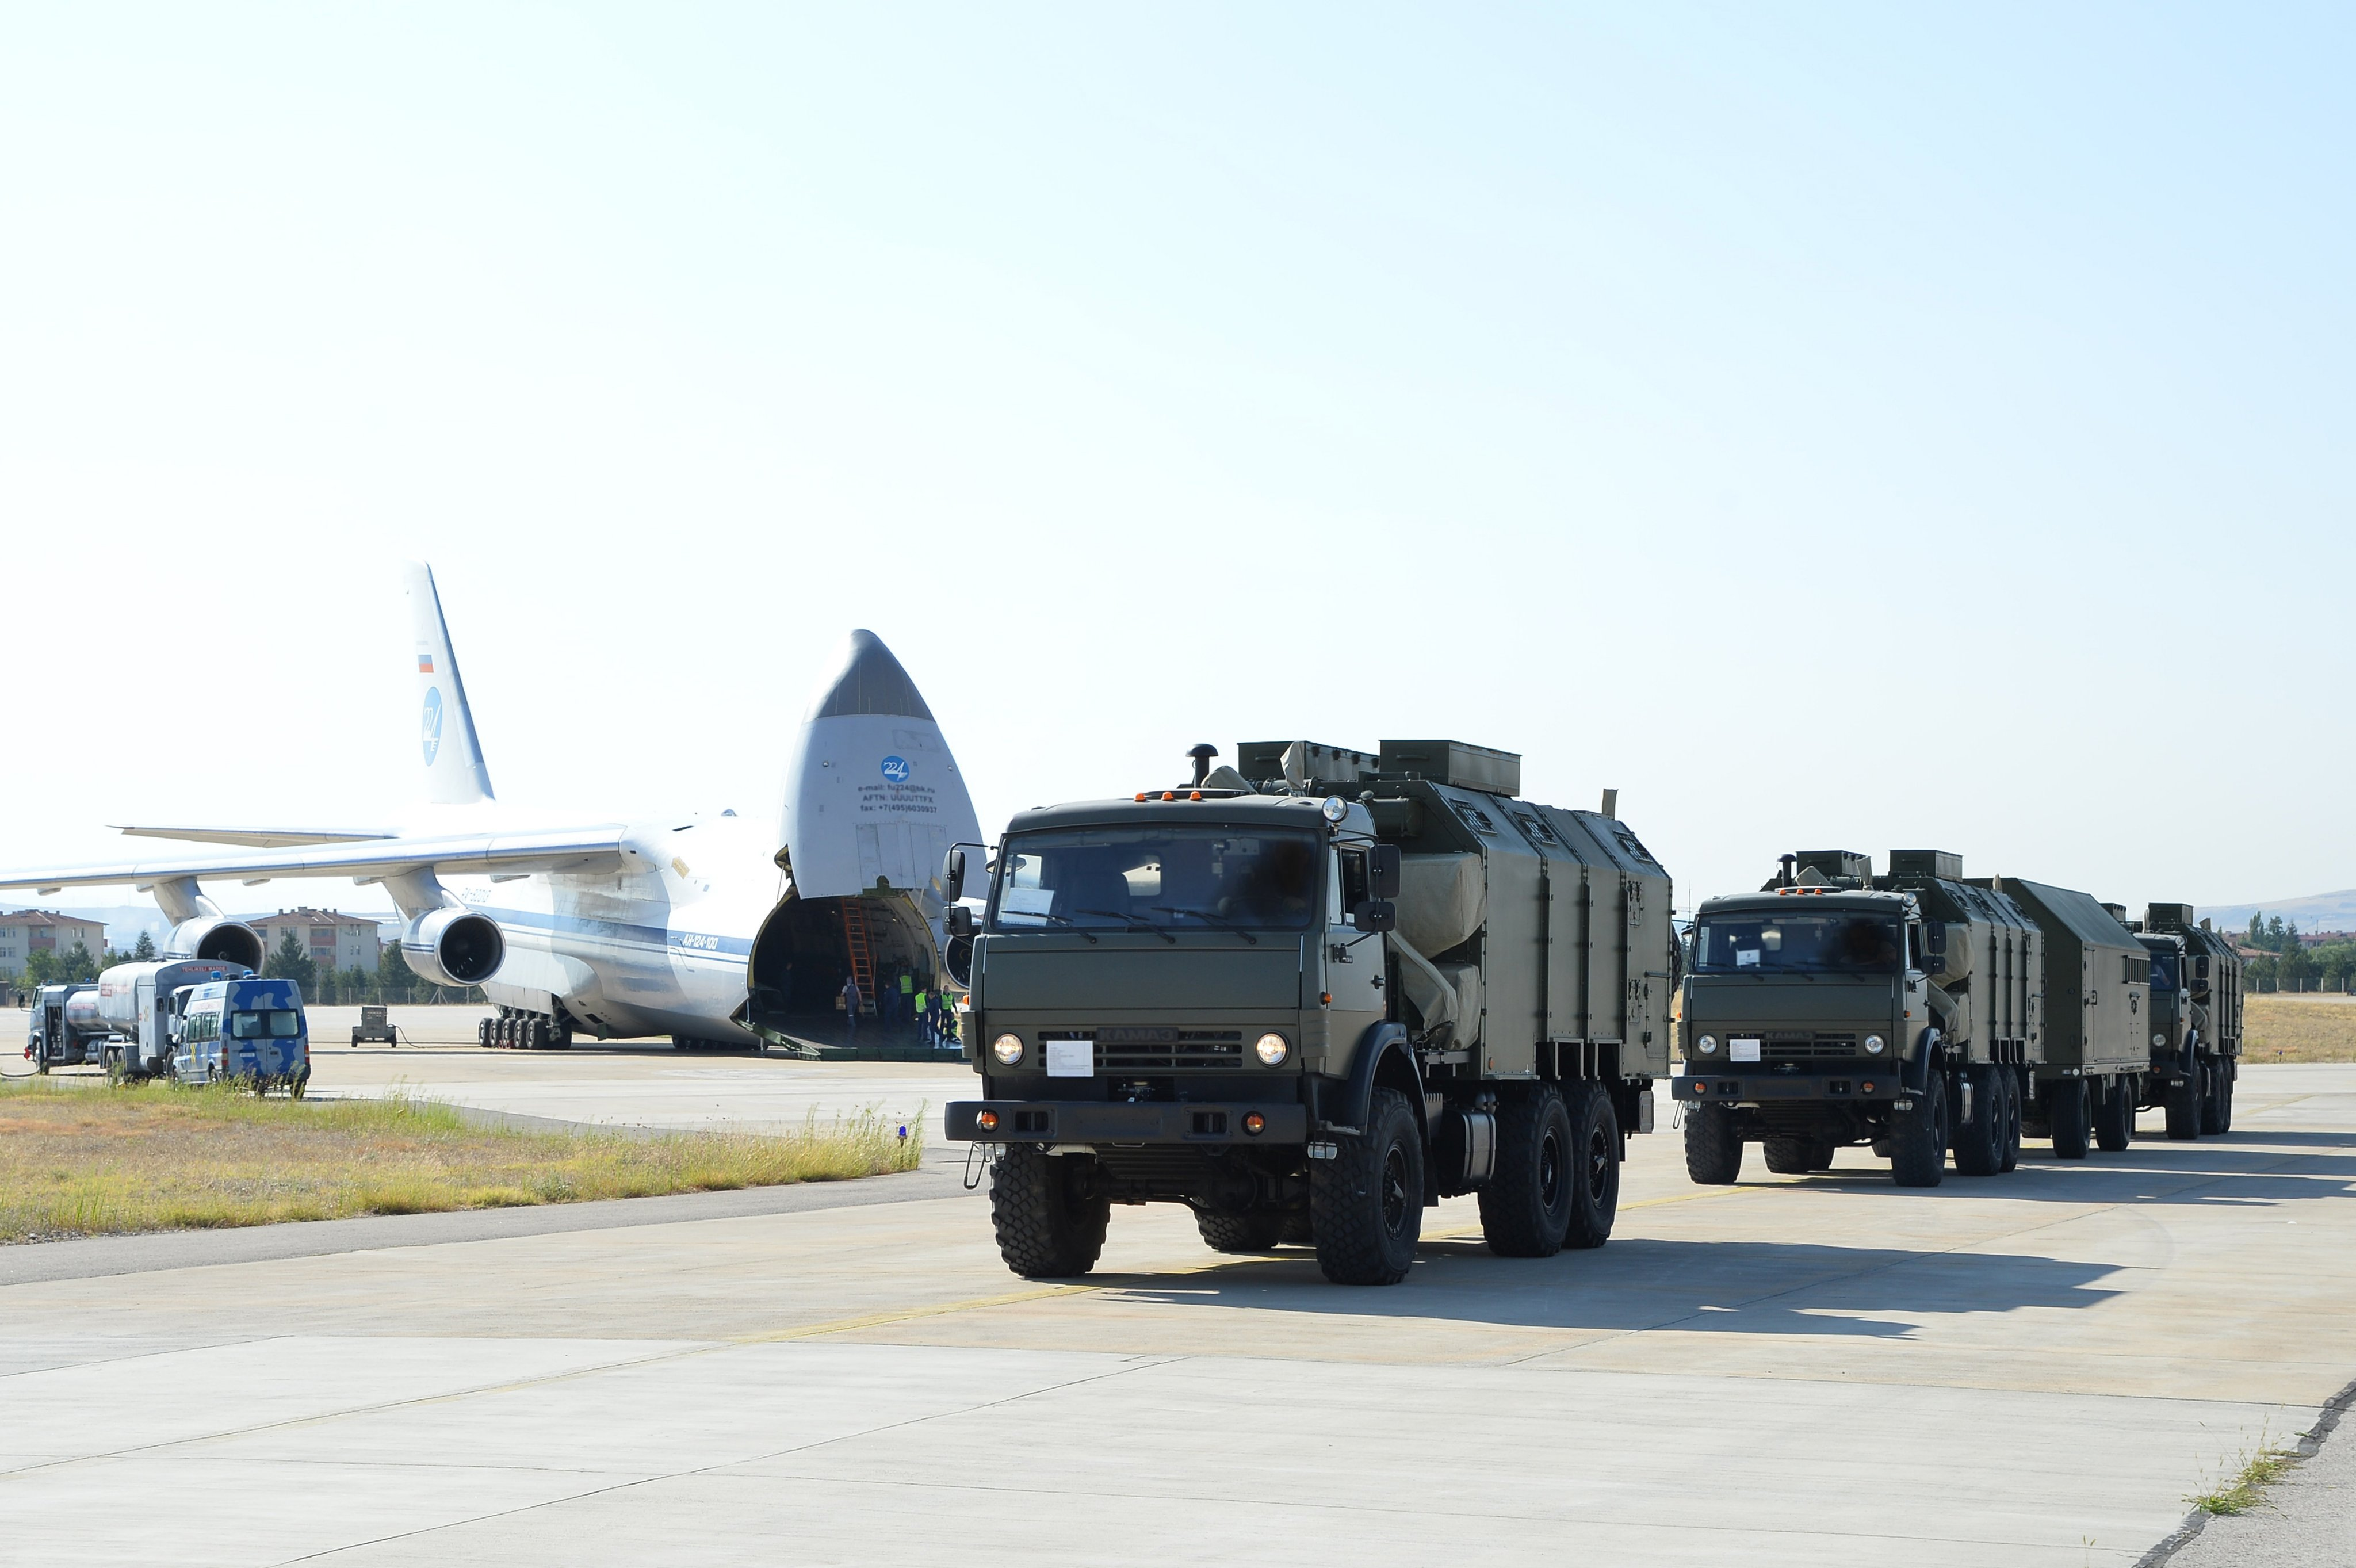 Russia-Turkey S-400 missile deal - Page 4 EEf0S0pX4AE1VFE?format=jpg&name=4096x4096